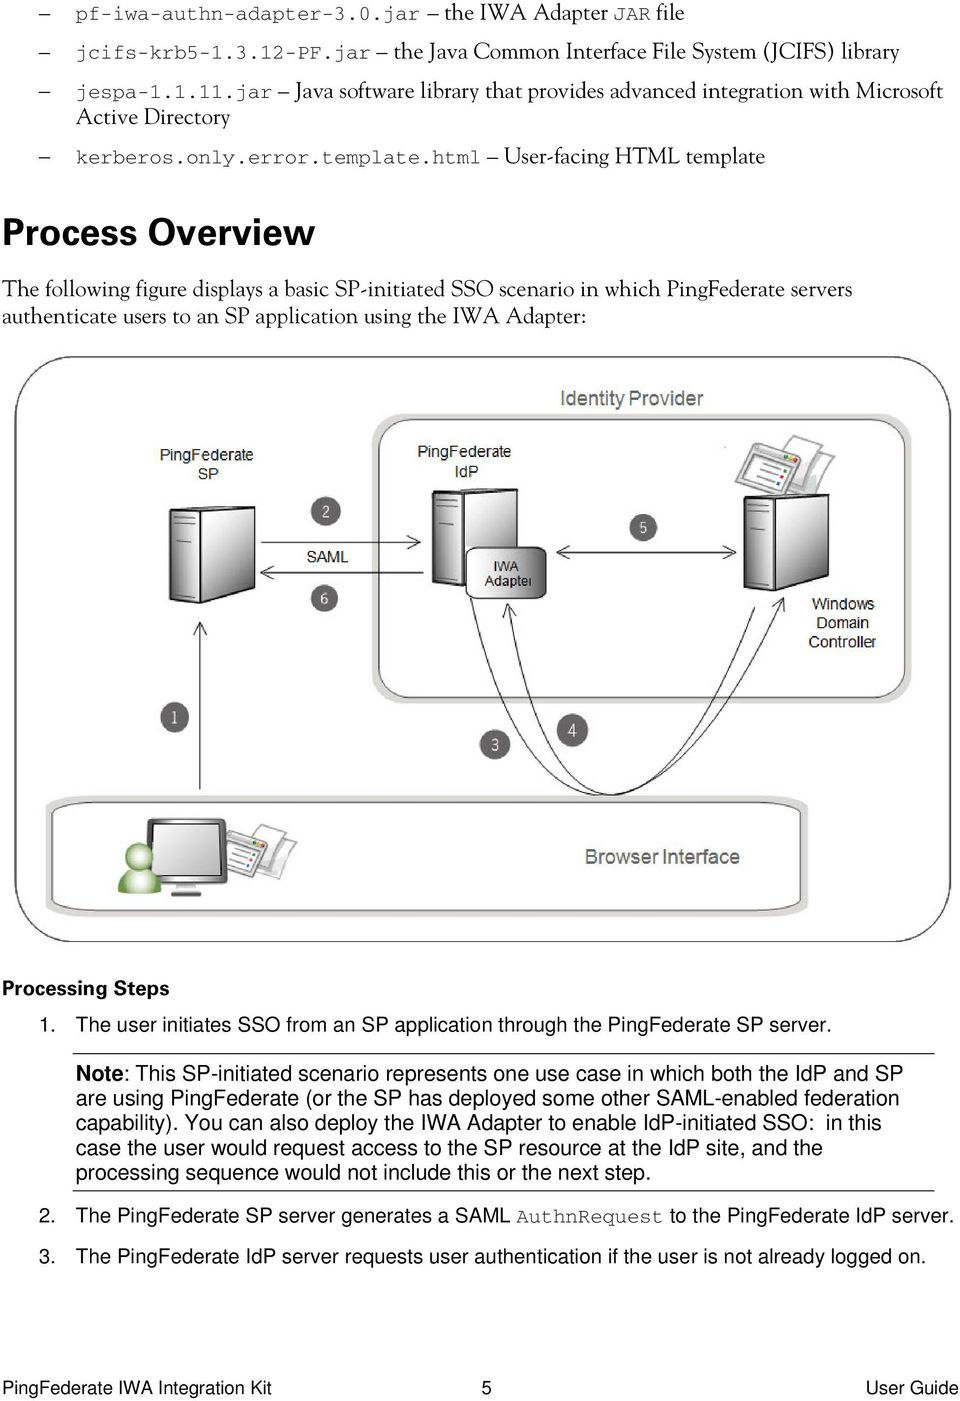 PingFederate  IWA Integration Kit  User Guide  Version PDF